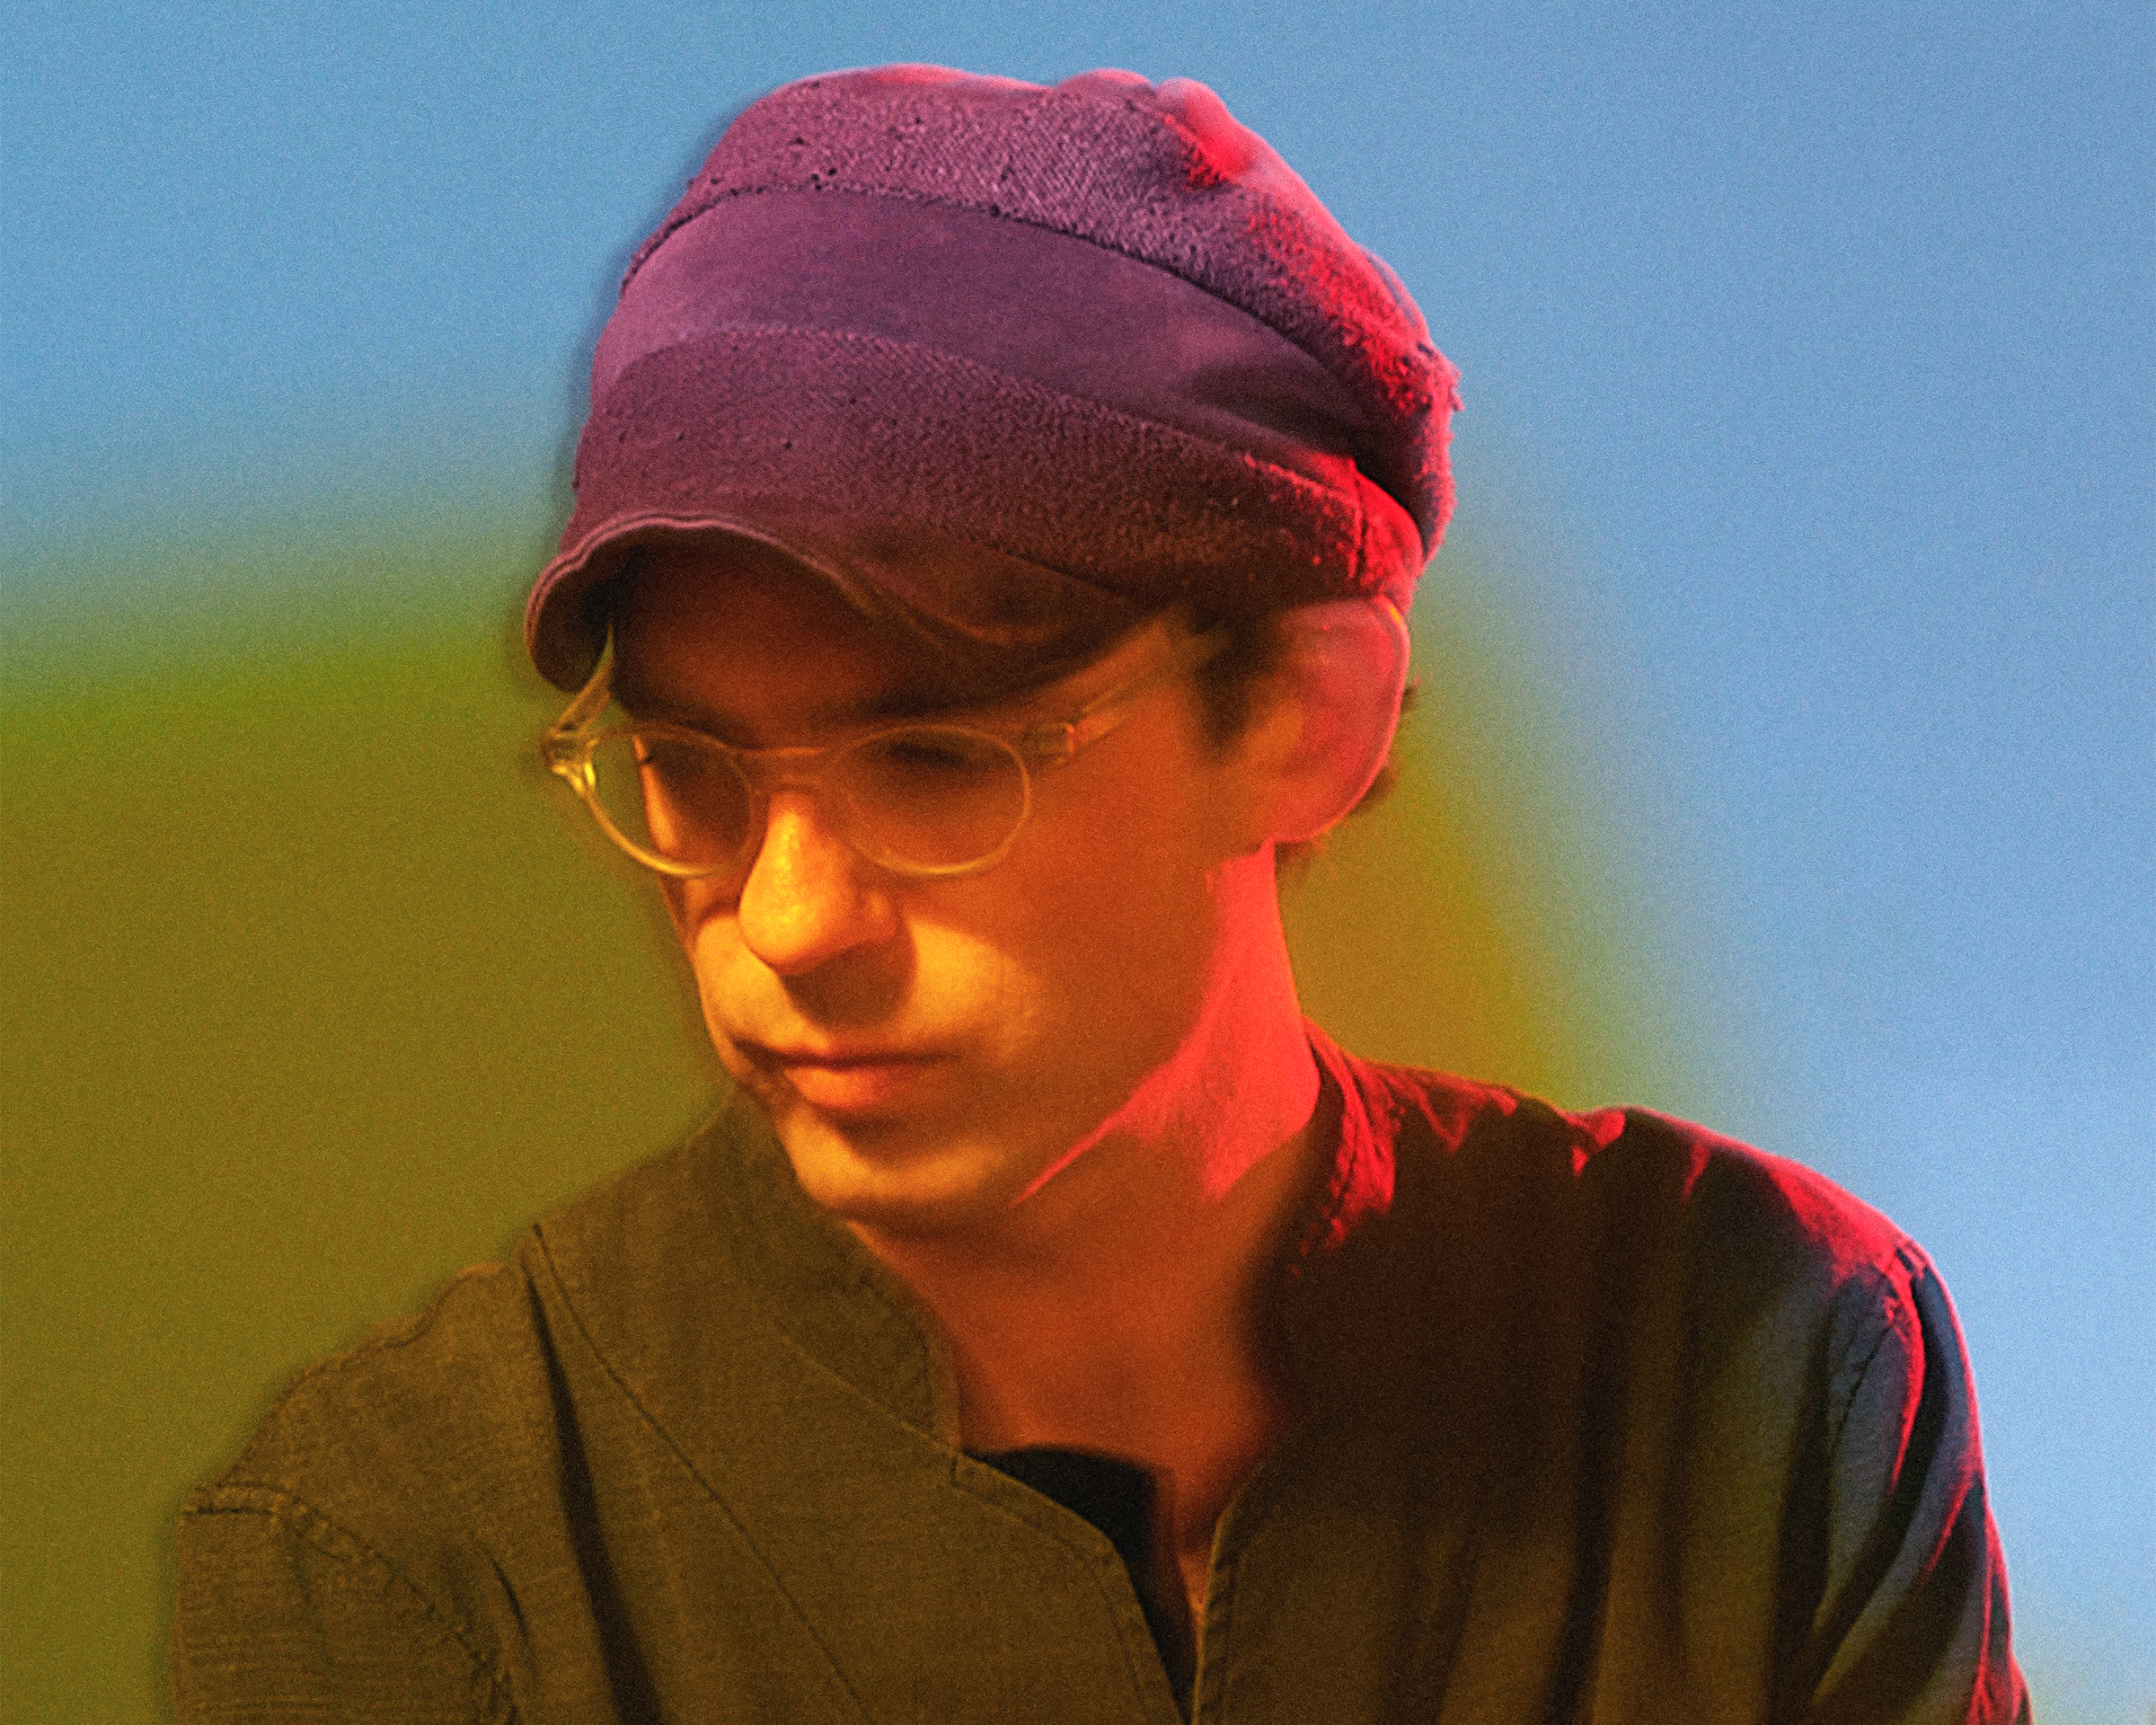 CLAP YOUR HANDS SAY YEAH shares new single 'CYHSY, 2005' from forthcoming album 'New Fragility' 4